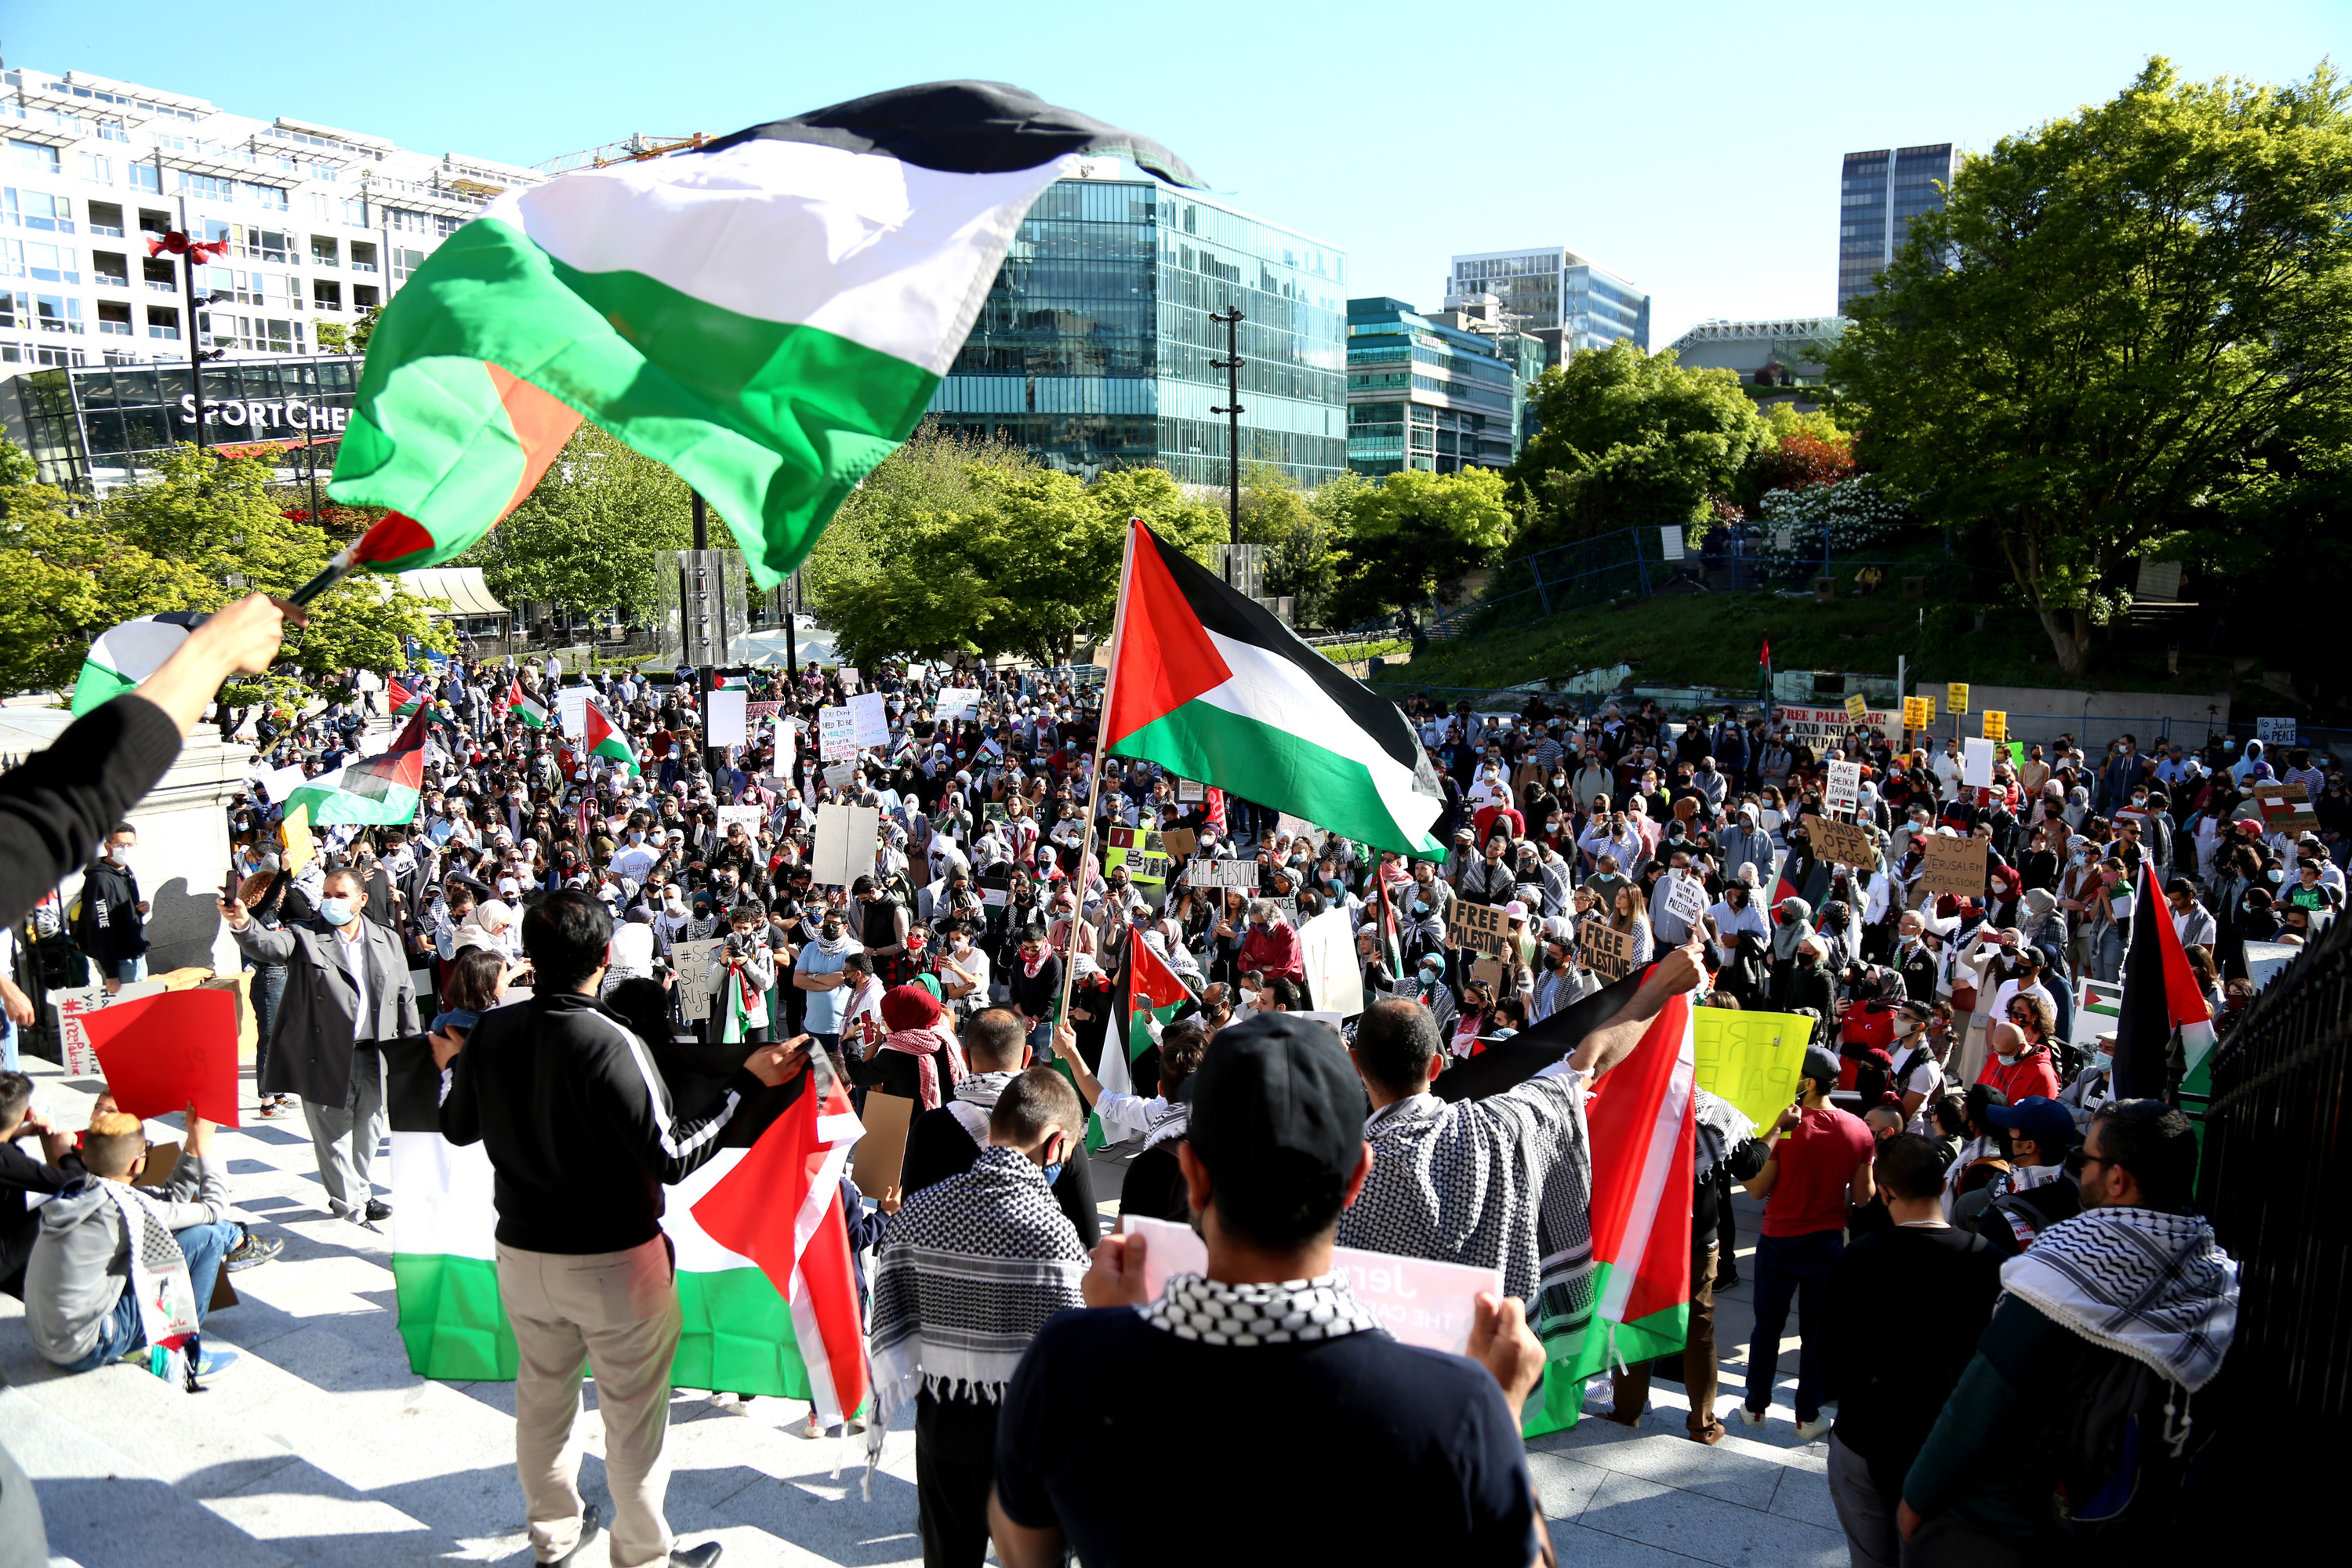 Protesters holding up Palestinian flags gather on steps